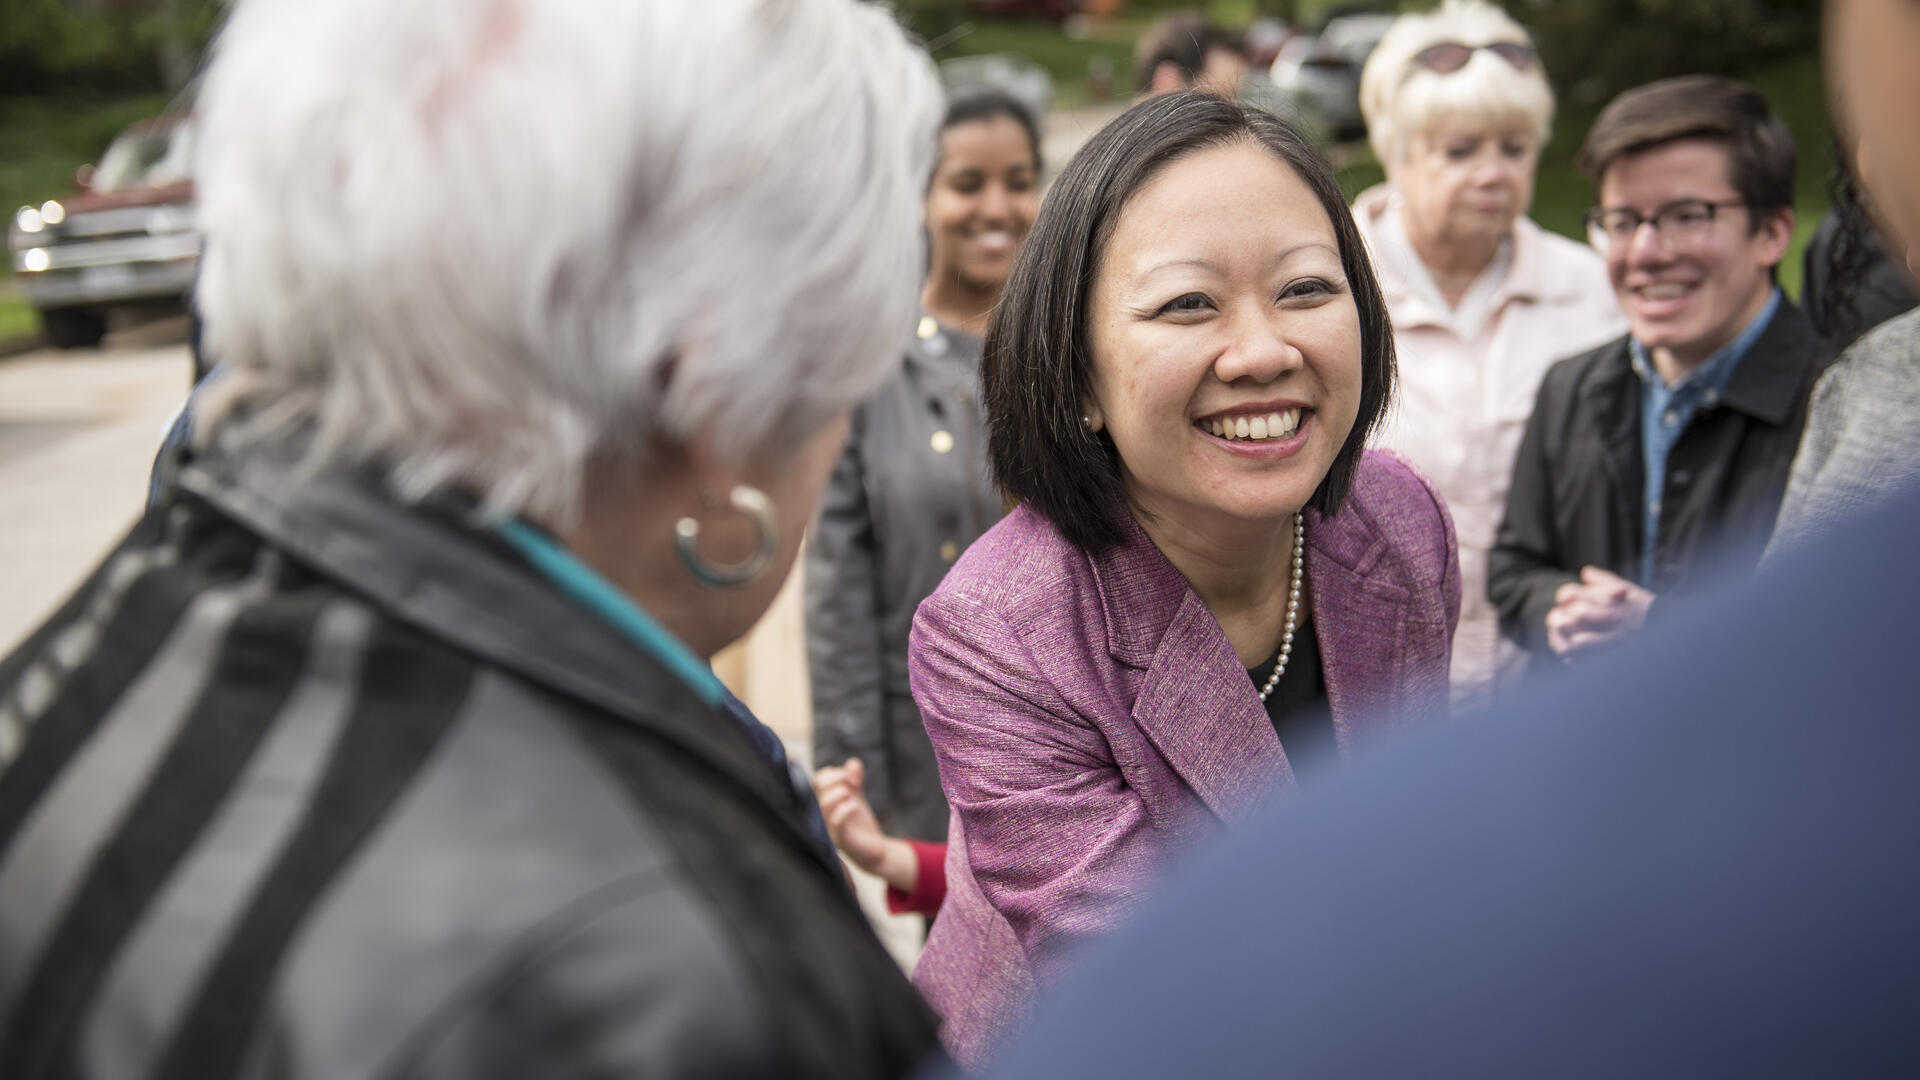 Kathy Tran shakes hands with voters while campaigning for a seat in the Virginia State House